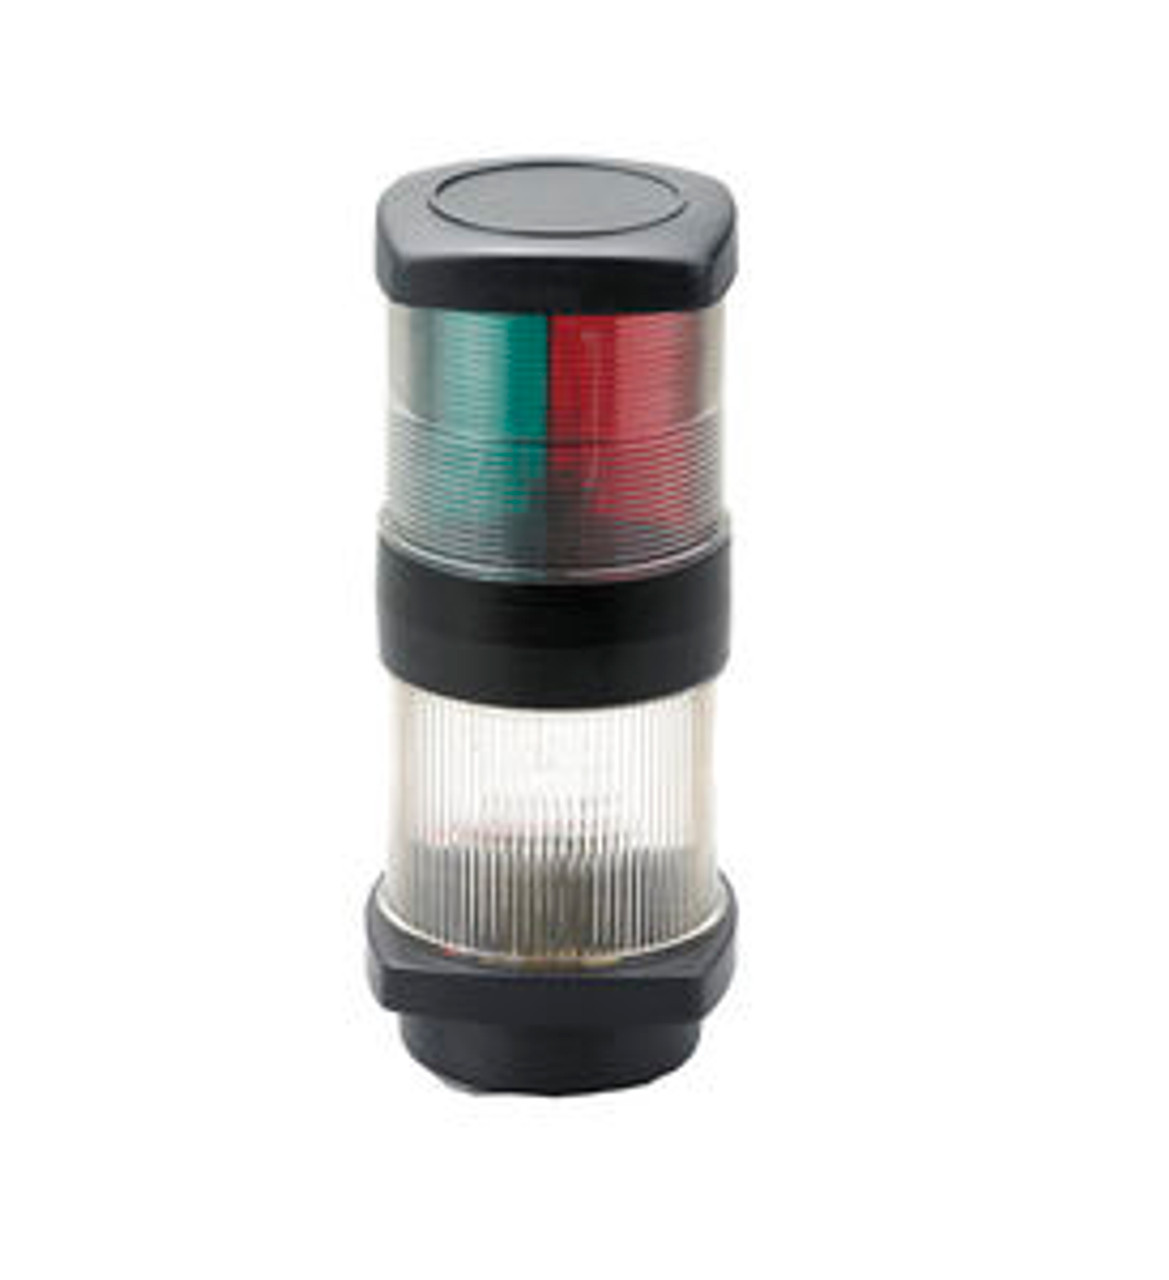 LED Tri-Color and All-Around Anchor Navigation Stack Light (N4-TRI-124)